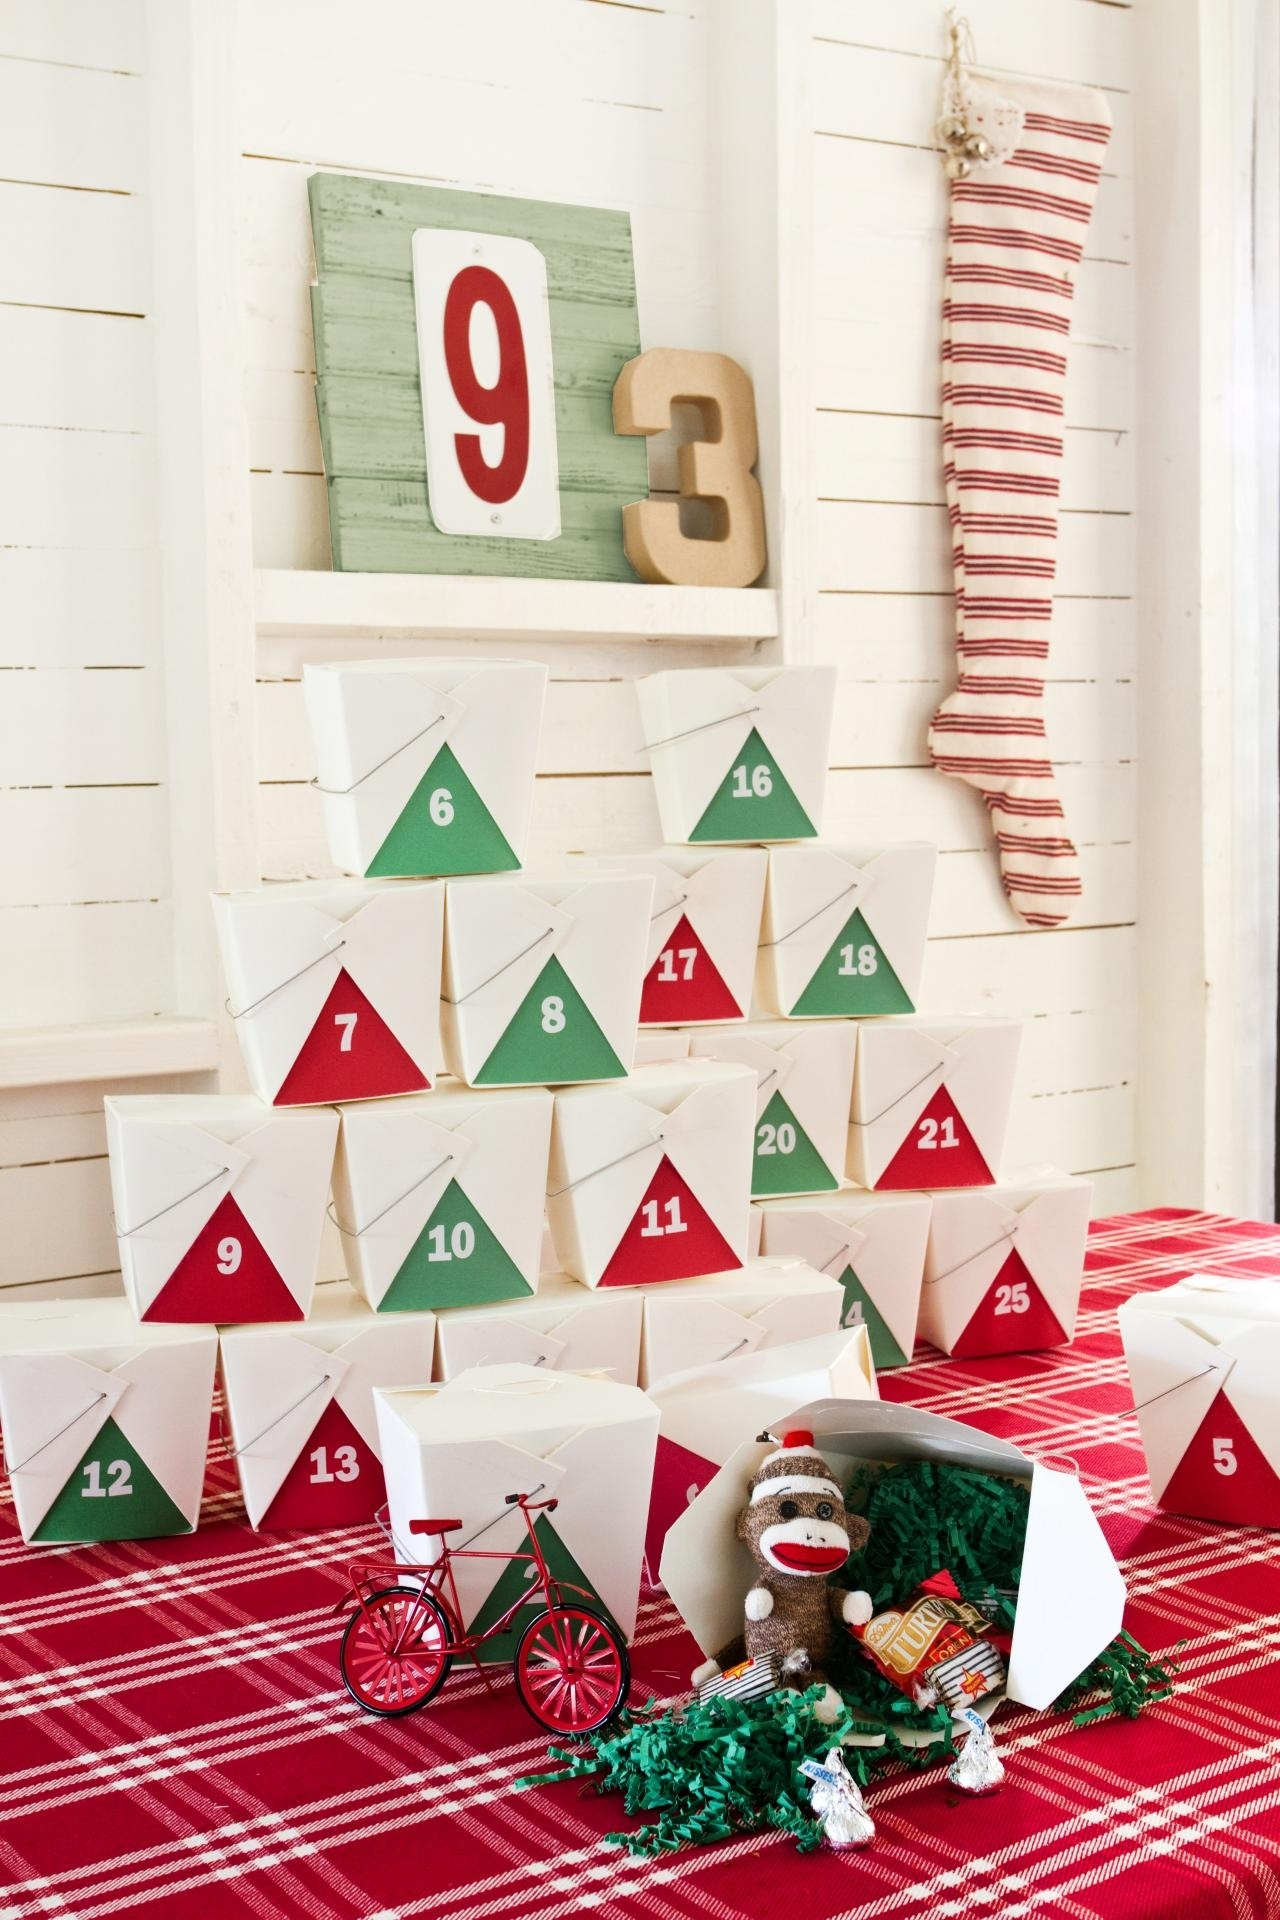 Make Your Own Takeout Box Advent Calendar | Hgtv pertaining to Create An Advent Calender Wooden